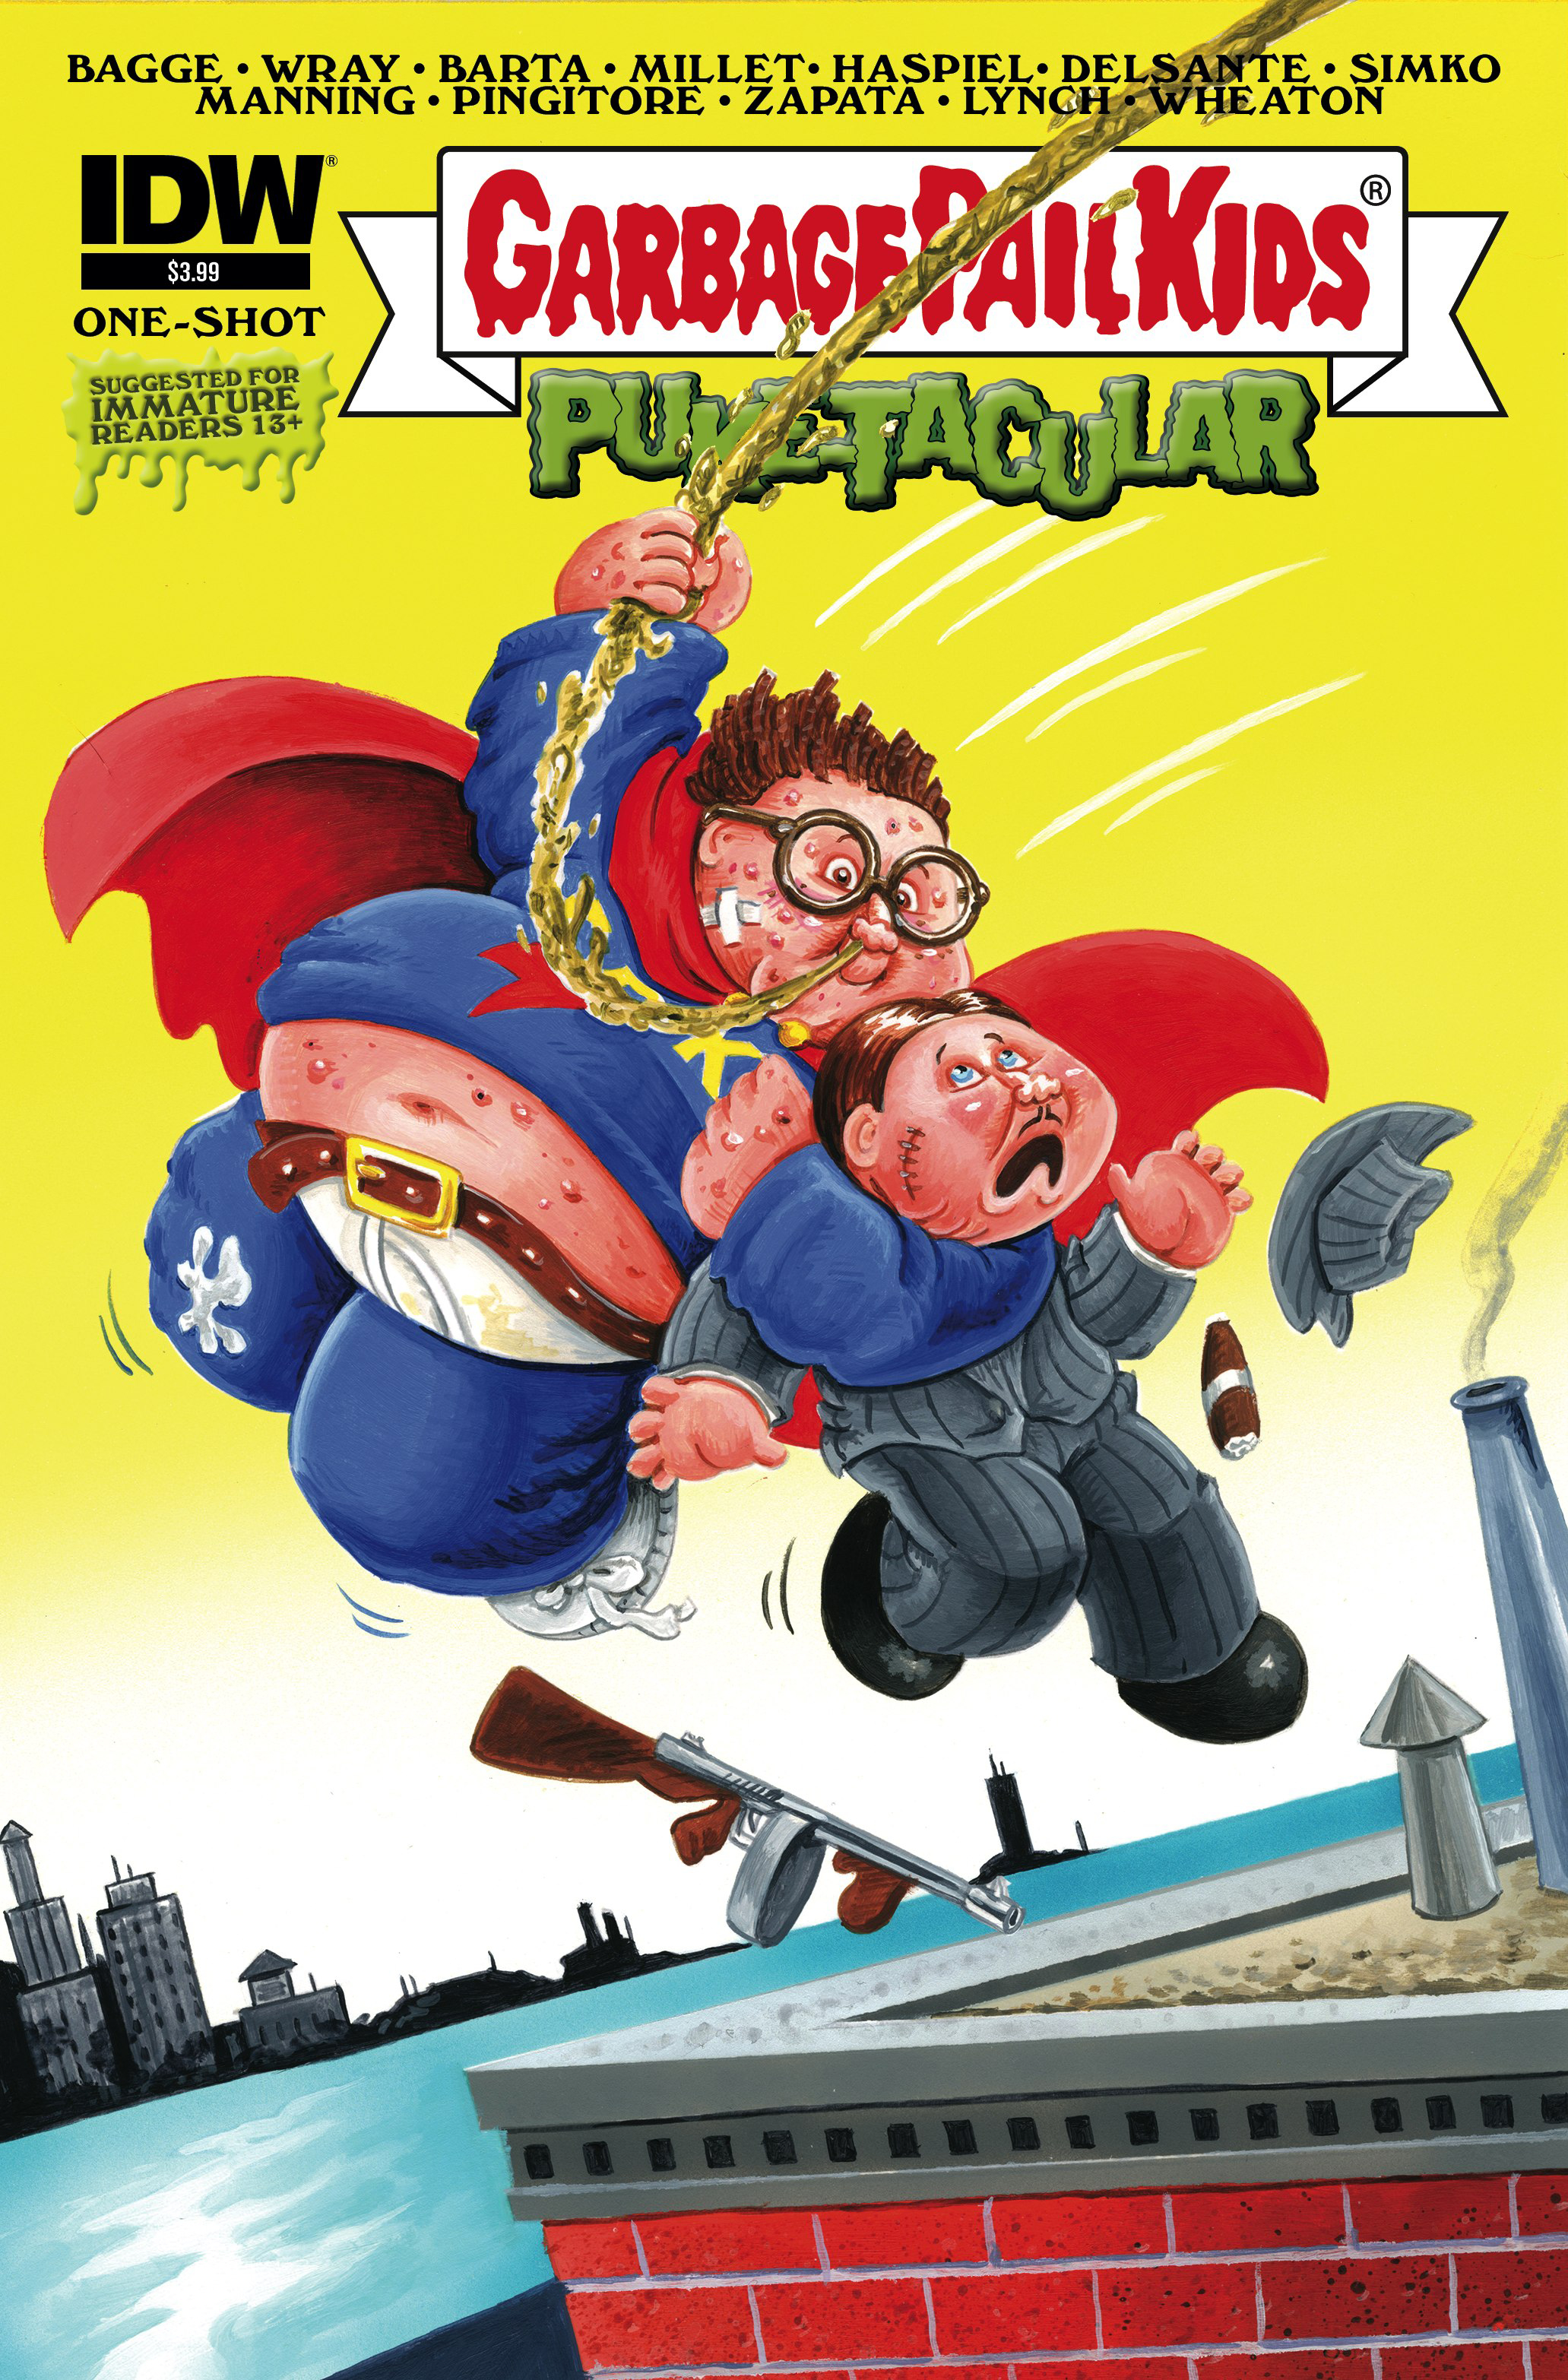 GARBAGE PAIL KIDS COMIC BOOK PUKETACULAR #1